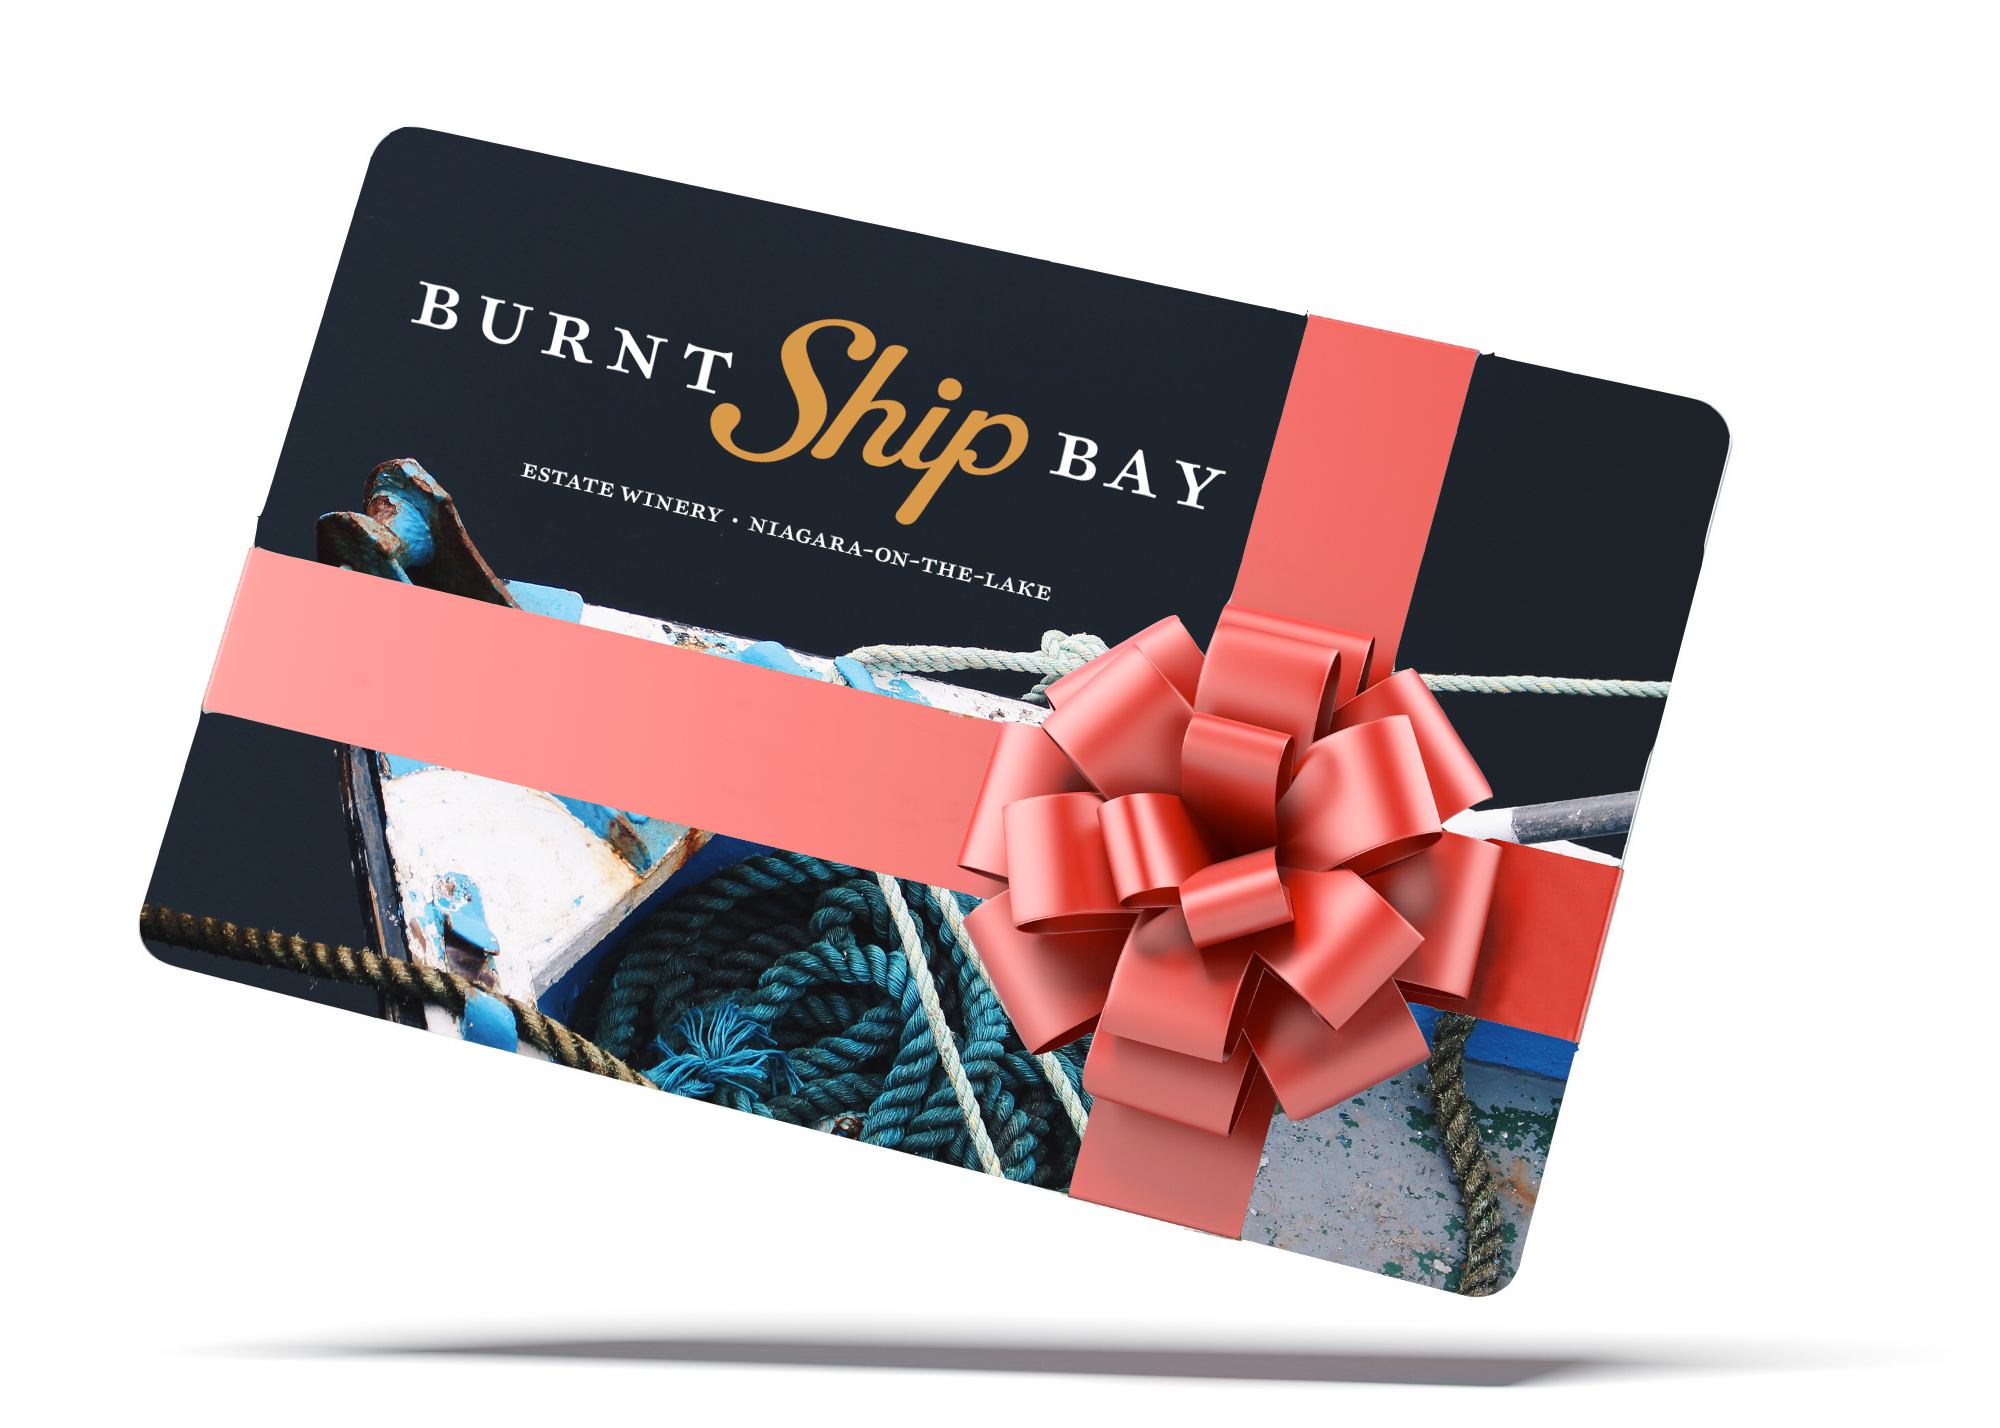 Burnt Ship Bay Gift Card